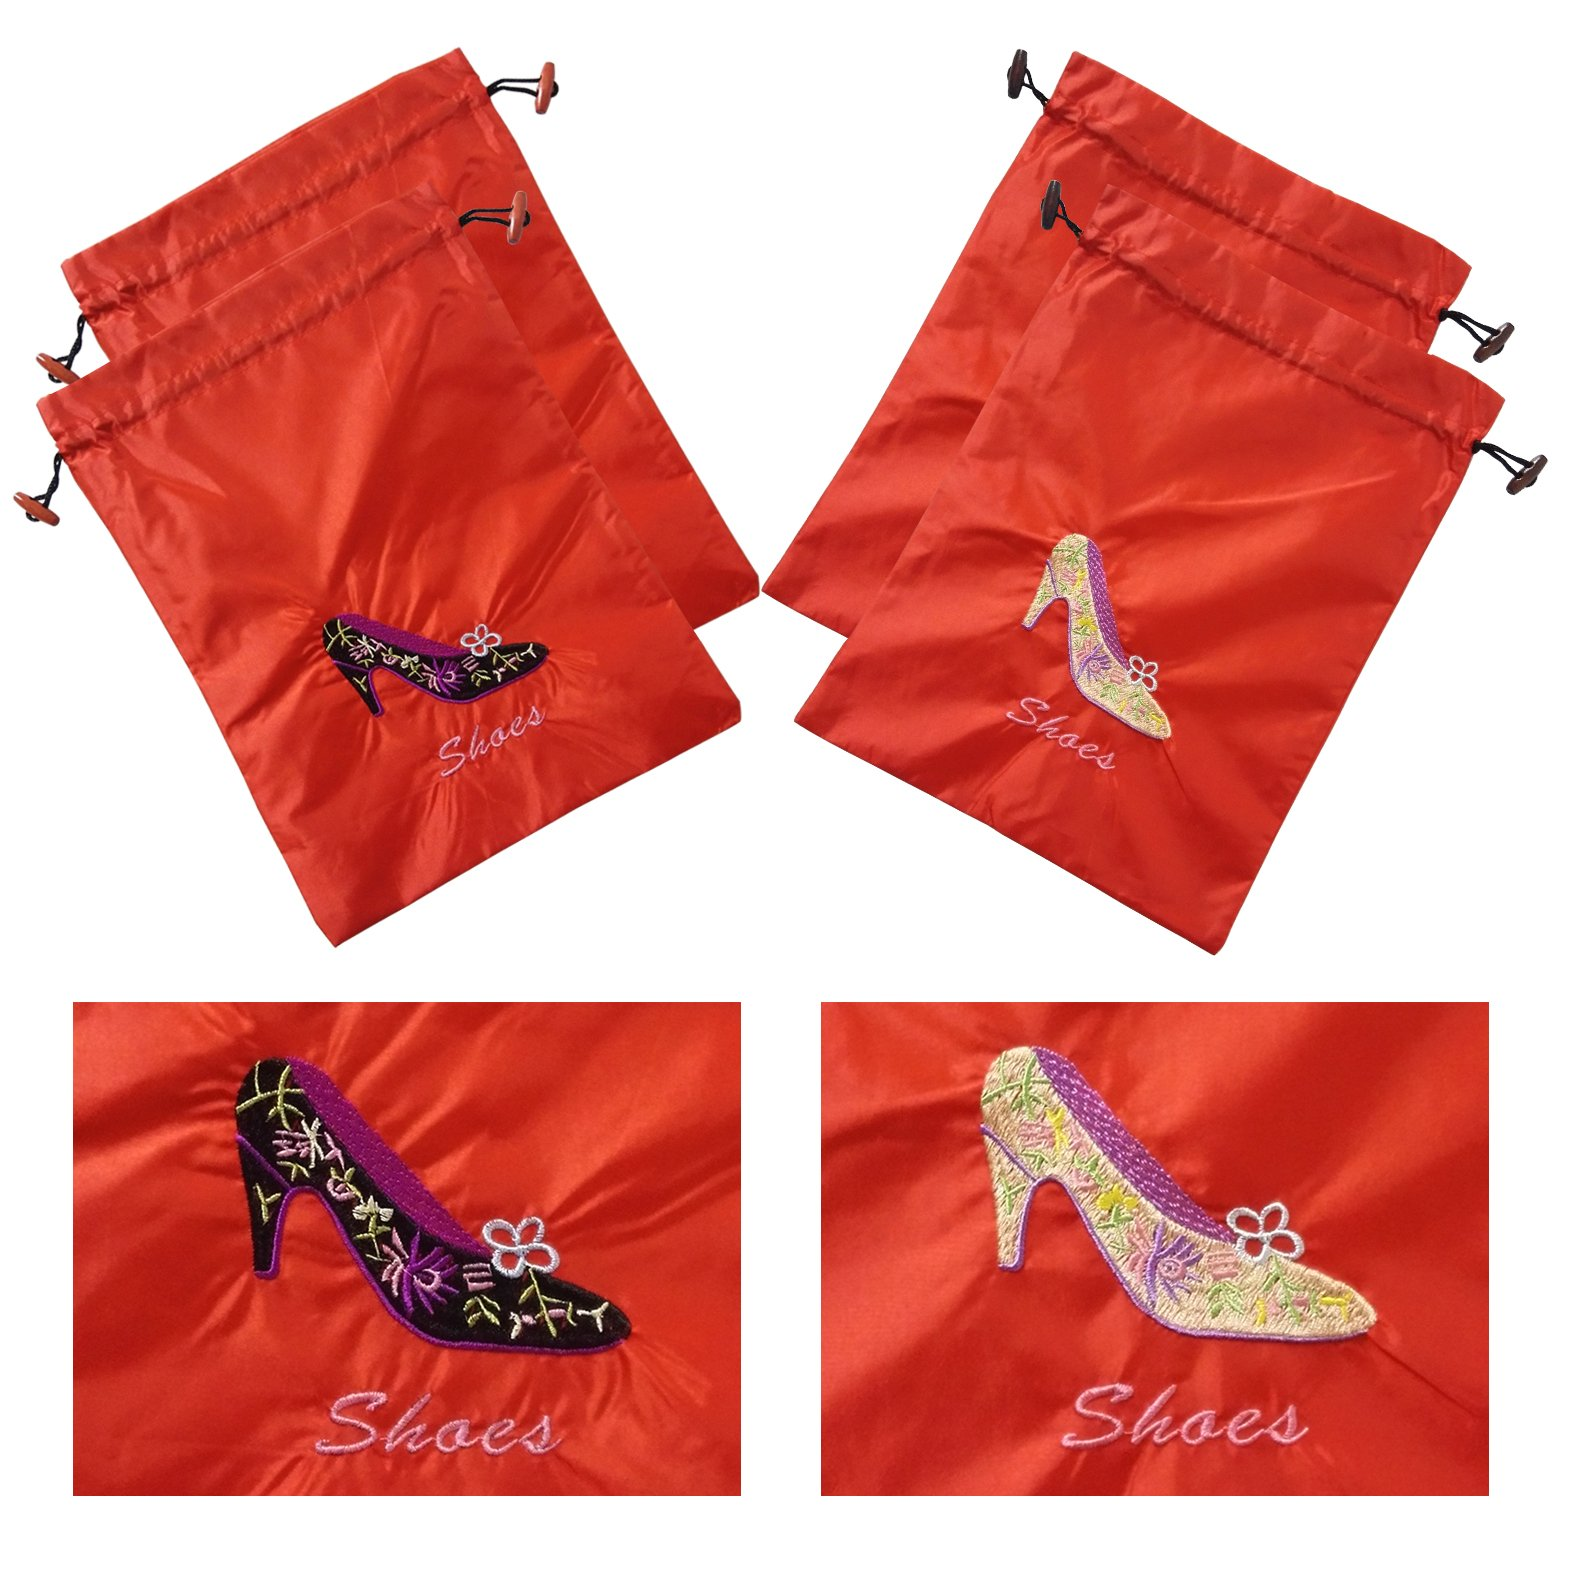 Gold Fortune 4 Packs 10.5'' x 14'' (L x W) Embroidered Silk Jacquard Travel Lingerie and Shoes Bags with Drawstring Closure (Red)